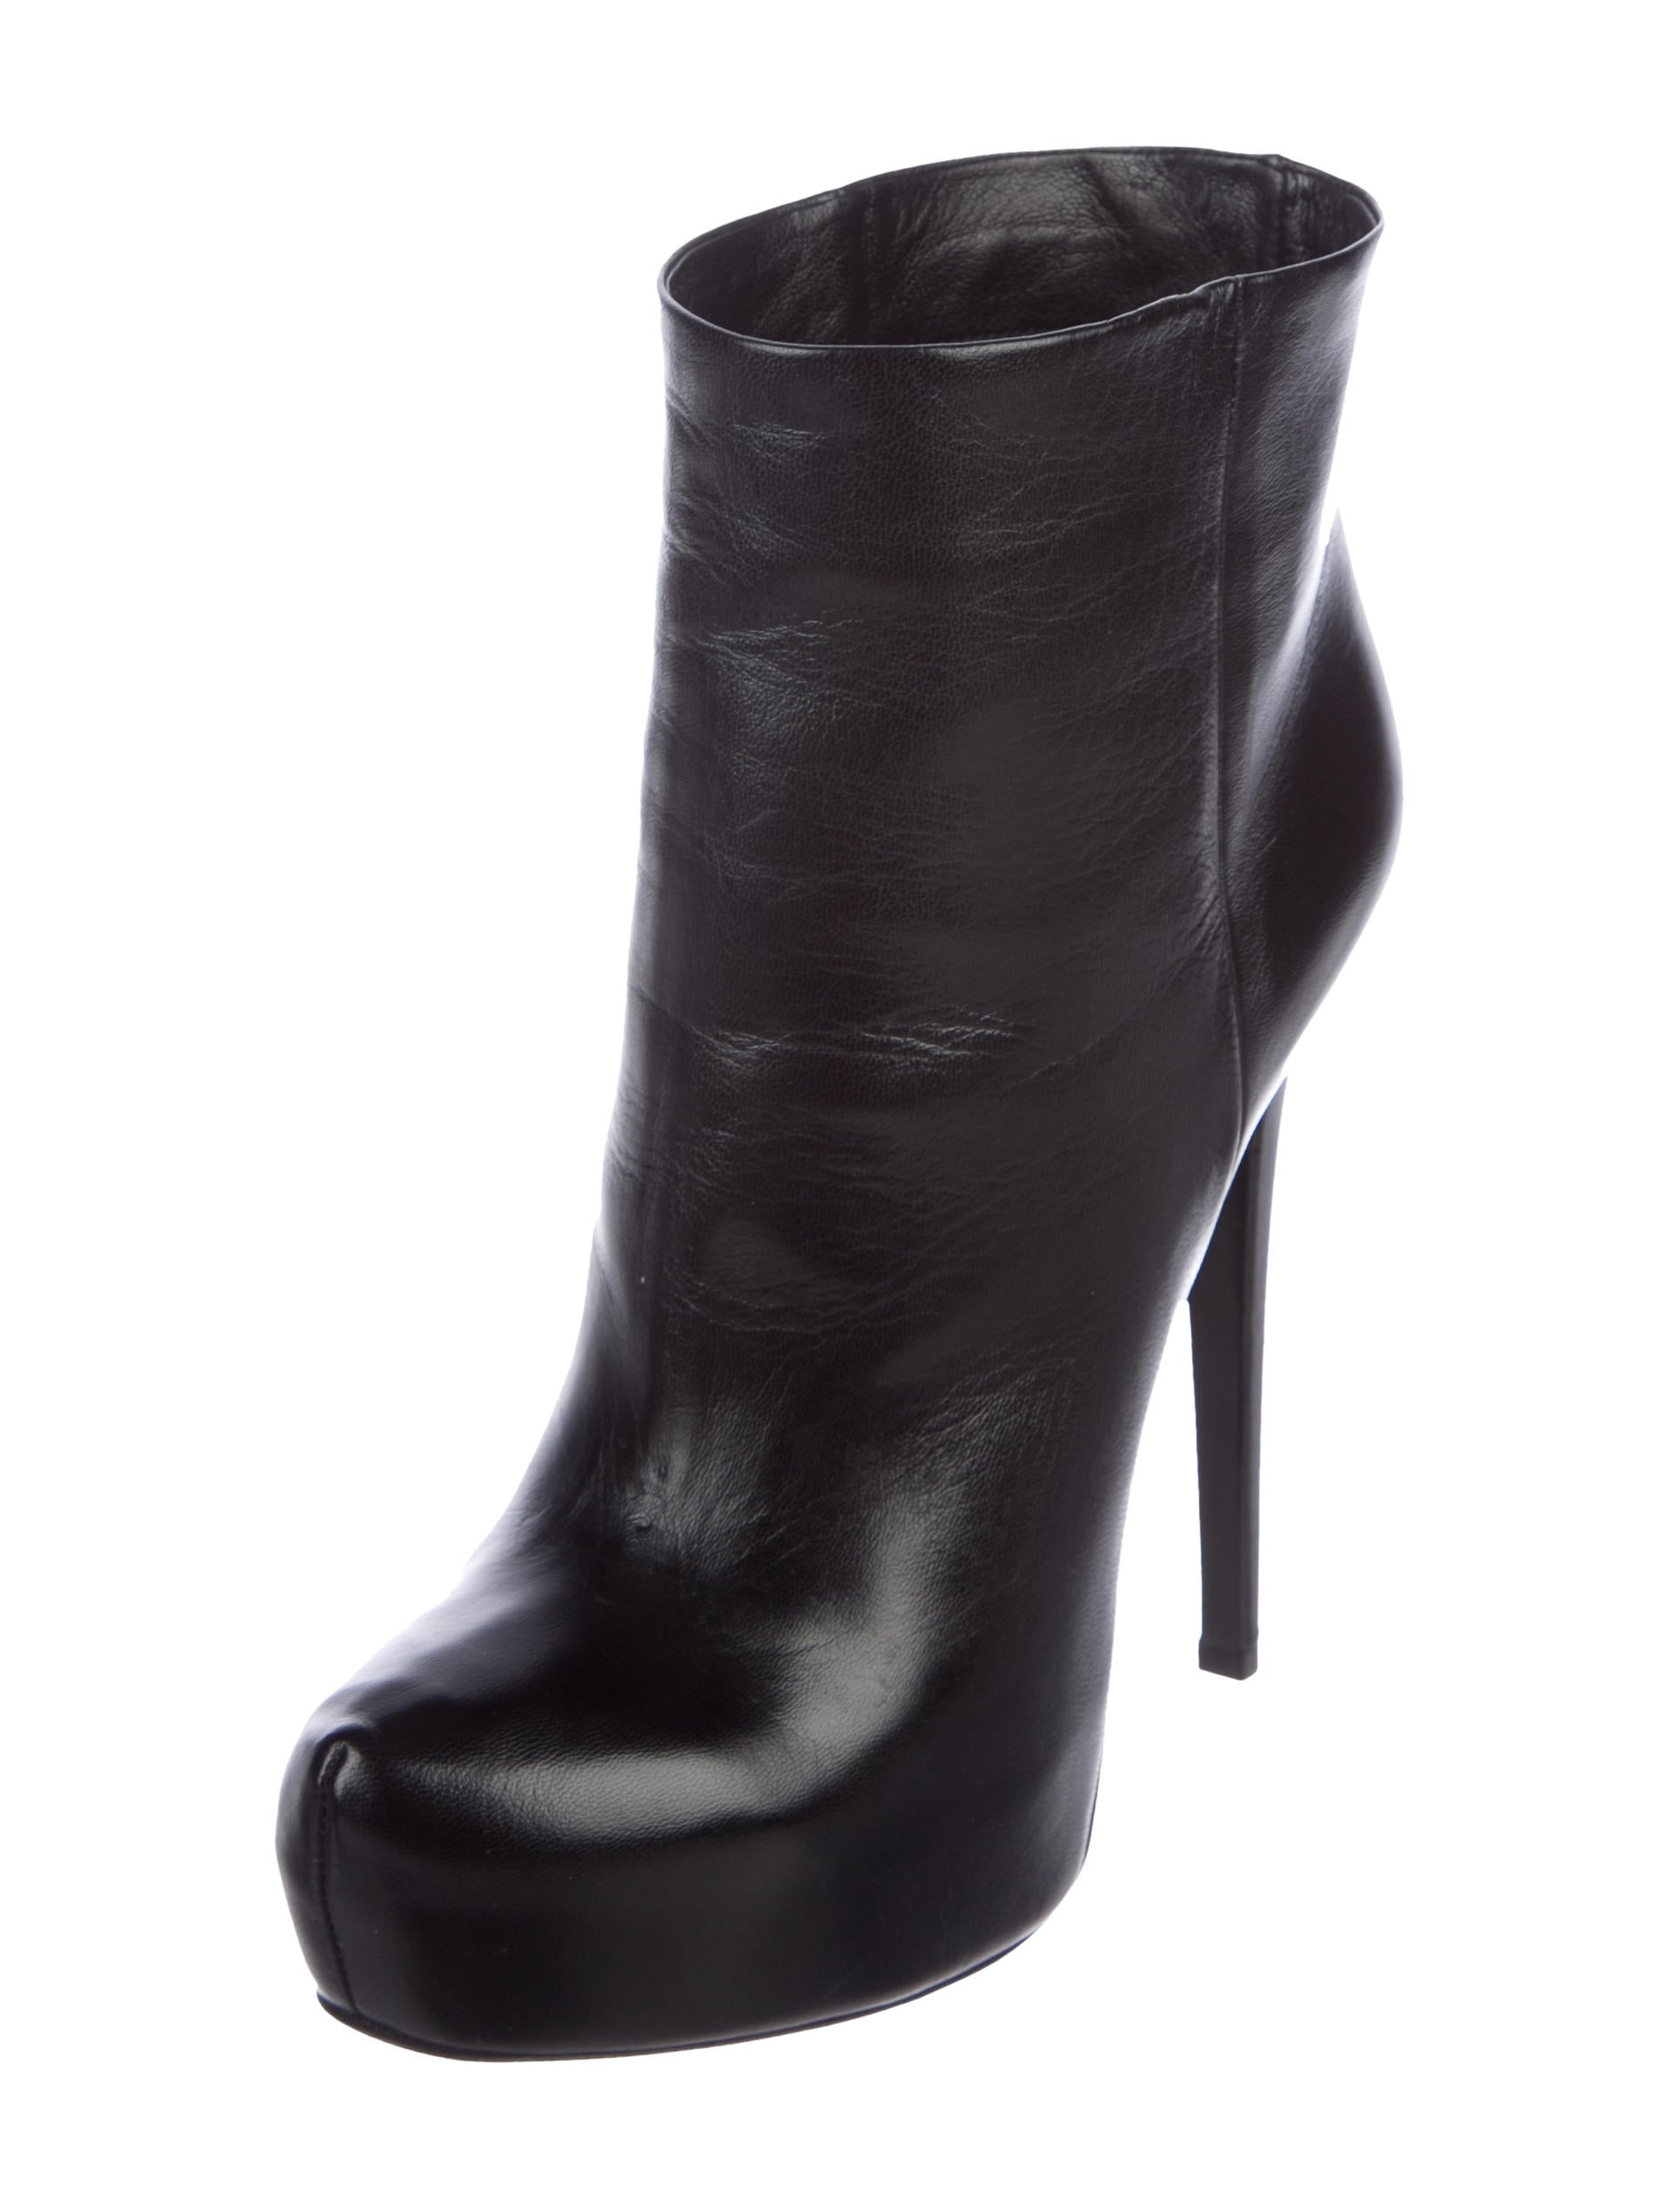 Ballin Classic Leather Platform Ankle Boots w/ Tags discount codes shopping online nkfbgj